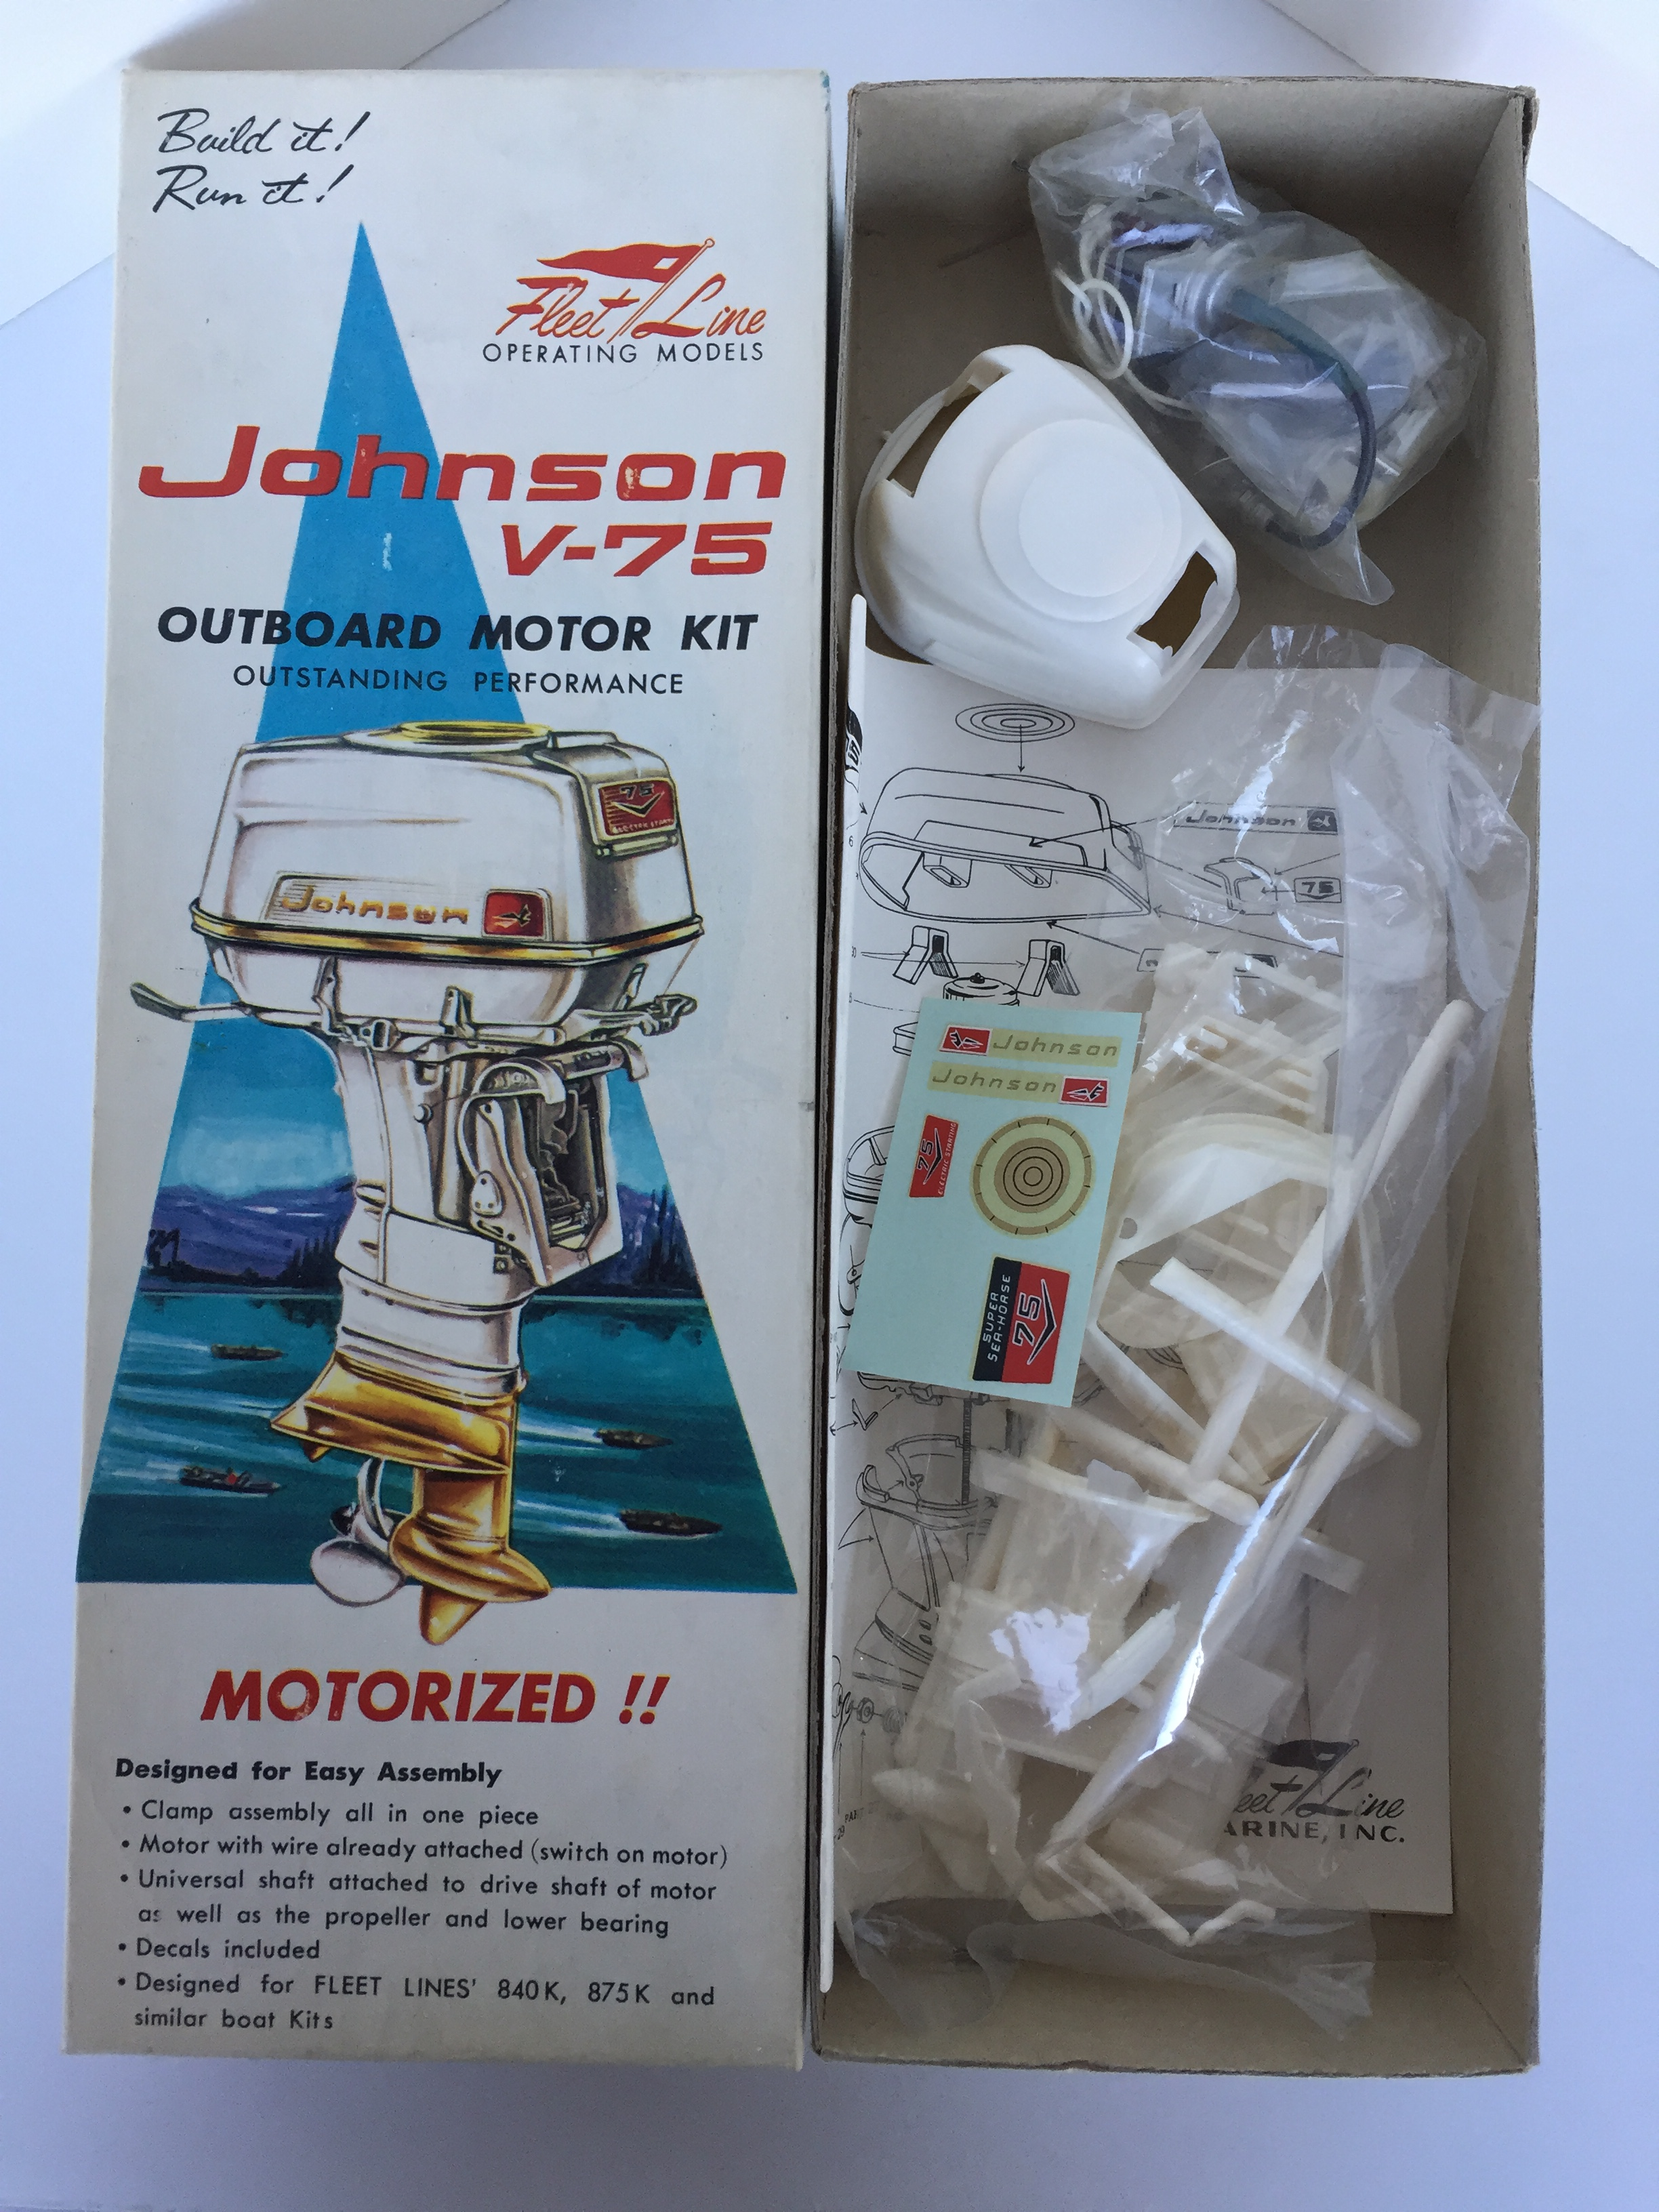 Johnson kit